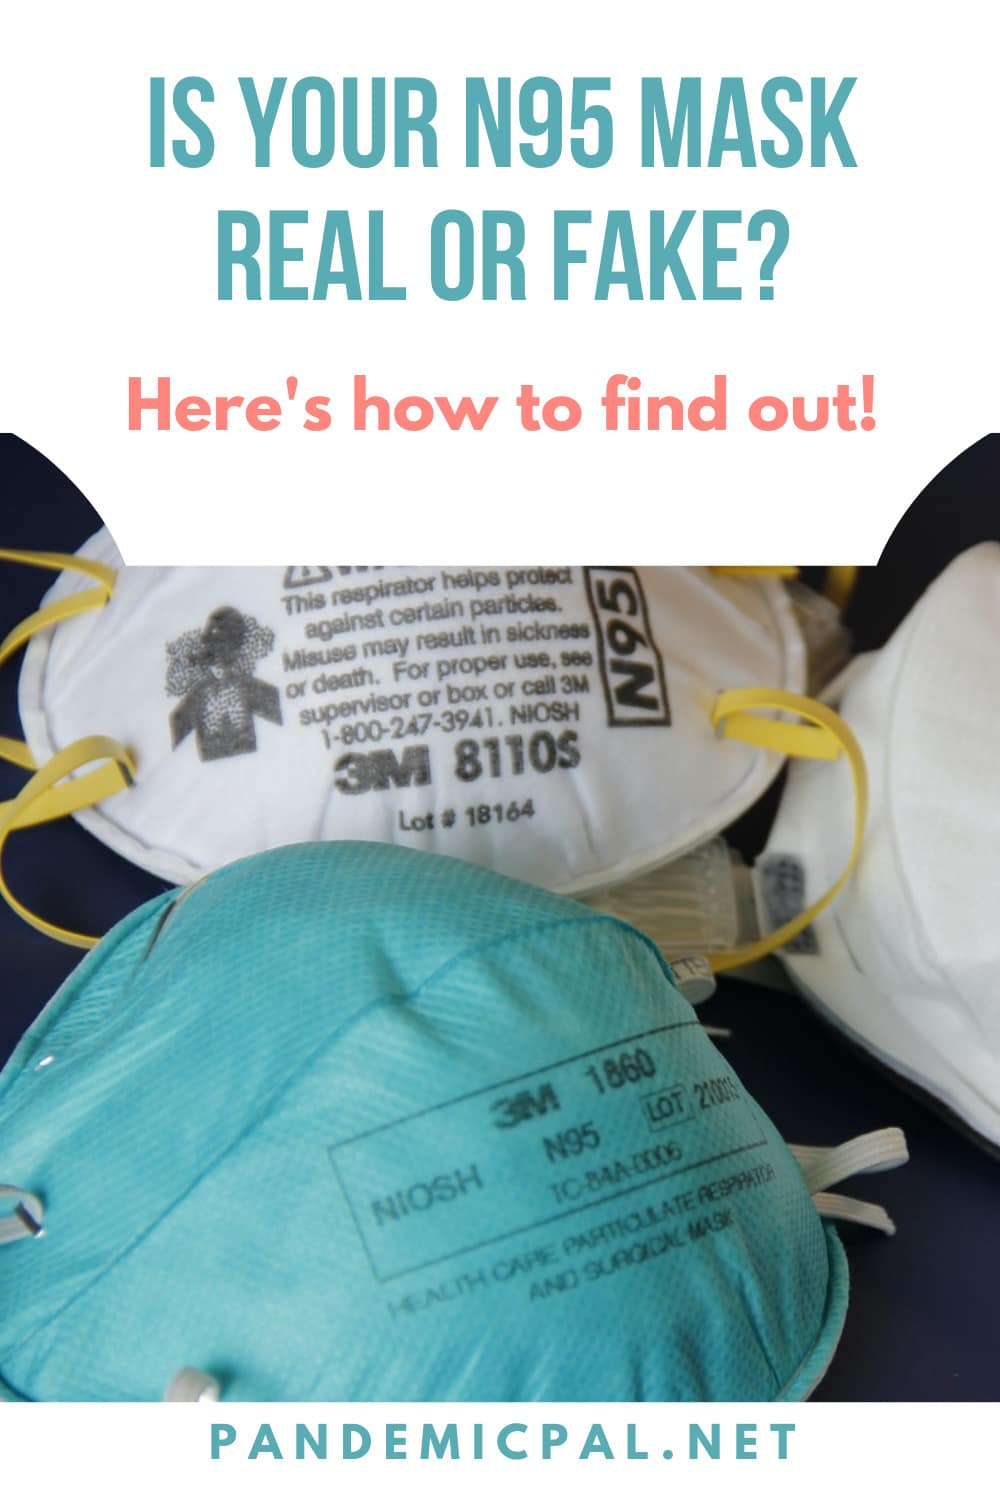 Is your N95 mask real or fake? How to tell the difference between genuine and counterfeit respirator masks.